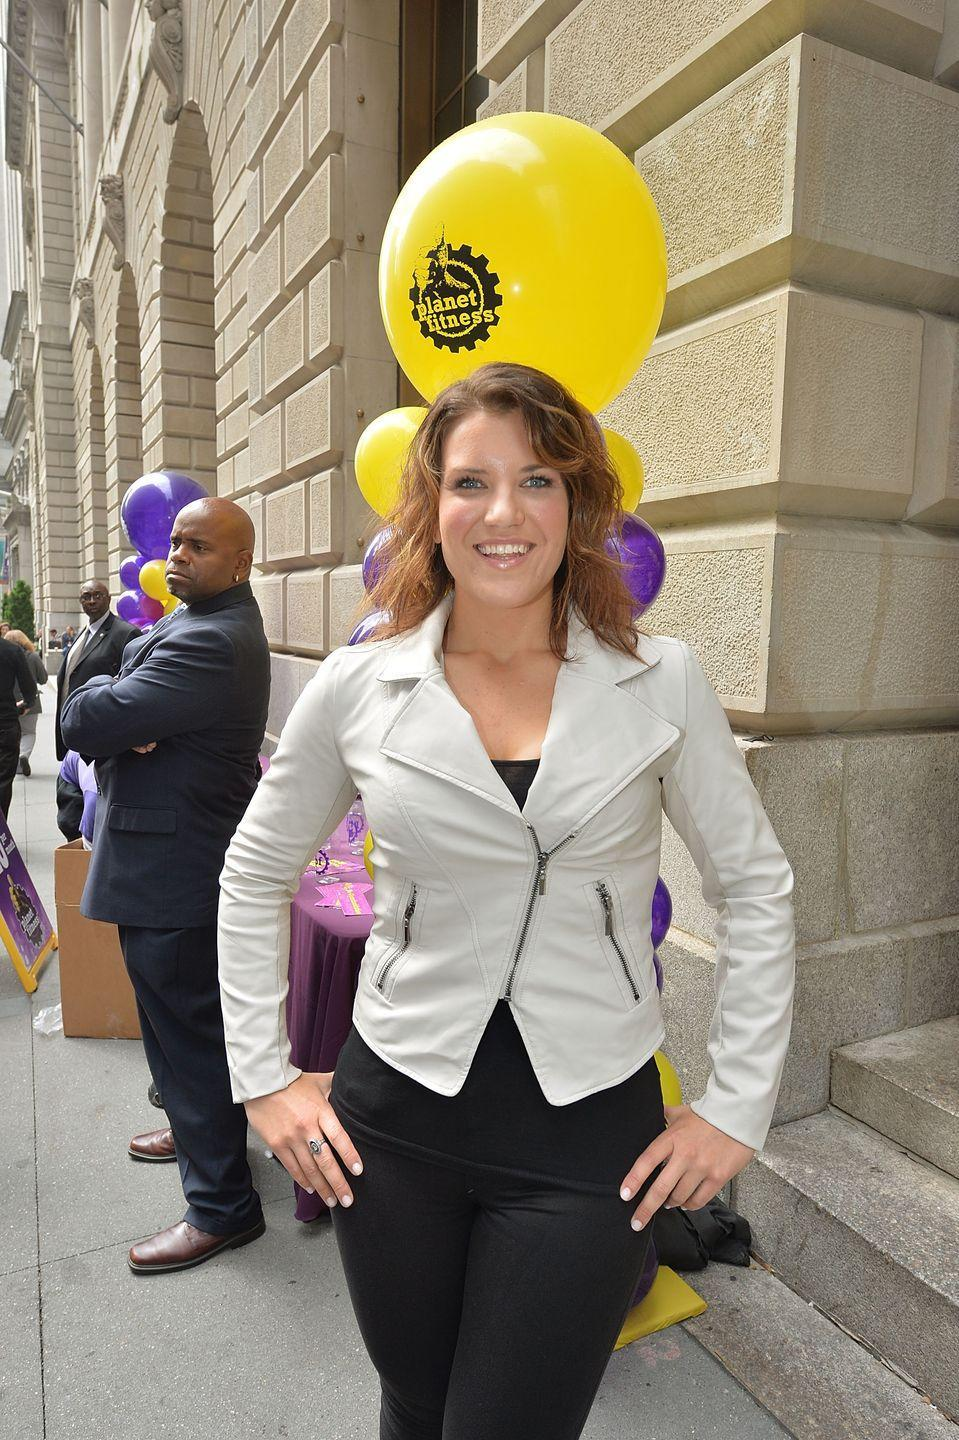 """<p>Danni became the marketing director for a Chicago-area Planet Fitness after the show. She now weighs 175 to 180 pounds, which is a """"healthy, happy weight for me to maintain without going crazy in the gym,"""" she told the <em><a href=""""https://www.chicagotribune.com/entertainment/chicagoinc/ct-ent-biggest-loser-danni-allen-20180209-story.html"""" rel=""""nofollow noopener"""" target=""""_blank"""" data-ylk=""""slk:Chicago Tribune"""" class=""""link rapid-noclick-resp"""">Chicago Tribune</a>. """"</em>When we were on the show, we worked out anywhere between eight and 10 hours a day. So it was great while I was on the show. It definitely gave me that jump-start into losing weight. It's not something I would say is realistic or long term for anybody to maintain, especially myself. I kept into health and fitness. I still work out about four days a week, and I watch what I eat as best as possible.""""</p><p>Danni opened up about polycystic ovary syndrome (PCOS) with Fox 32. She wrote on <a href=""""https://www.instagram.com/p/B25IYZqH2jy/"""" rel=""""nofollow noopener"""" target=""""_blank"""" data-ylk=""""slk:Instagram"""" class=""""link rapid-noclick-resp"""">Instagram</a>: """"Everyday I'm learning new things about this condition and appreciate the doctors and researchers who work tirelessly to find more ways to combat PCOS.""""</p>"""